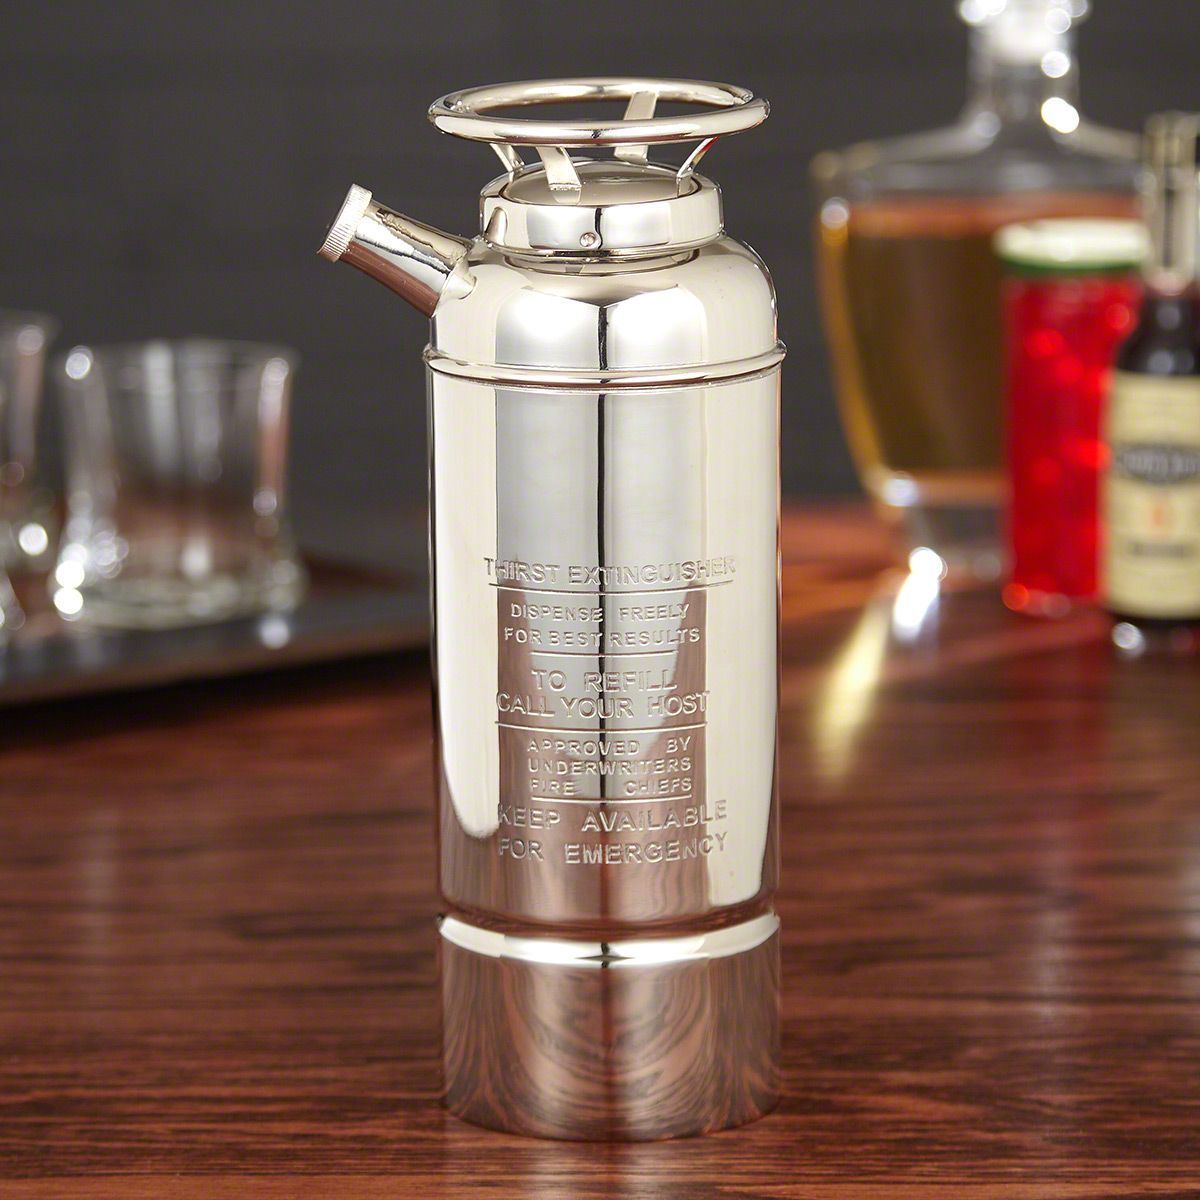 In Case of Emergency Silver-Plated Cocktail Shaker